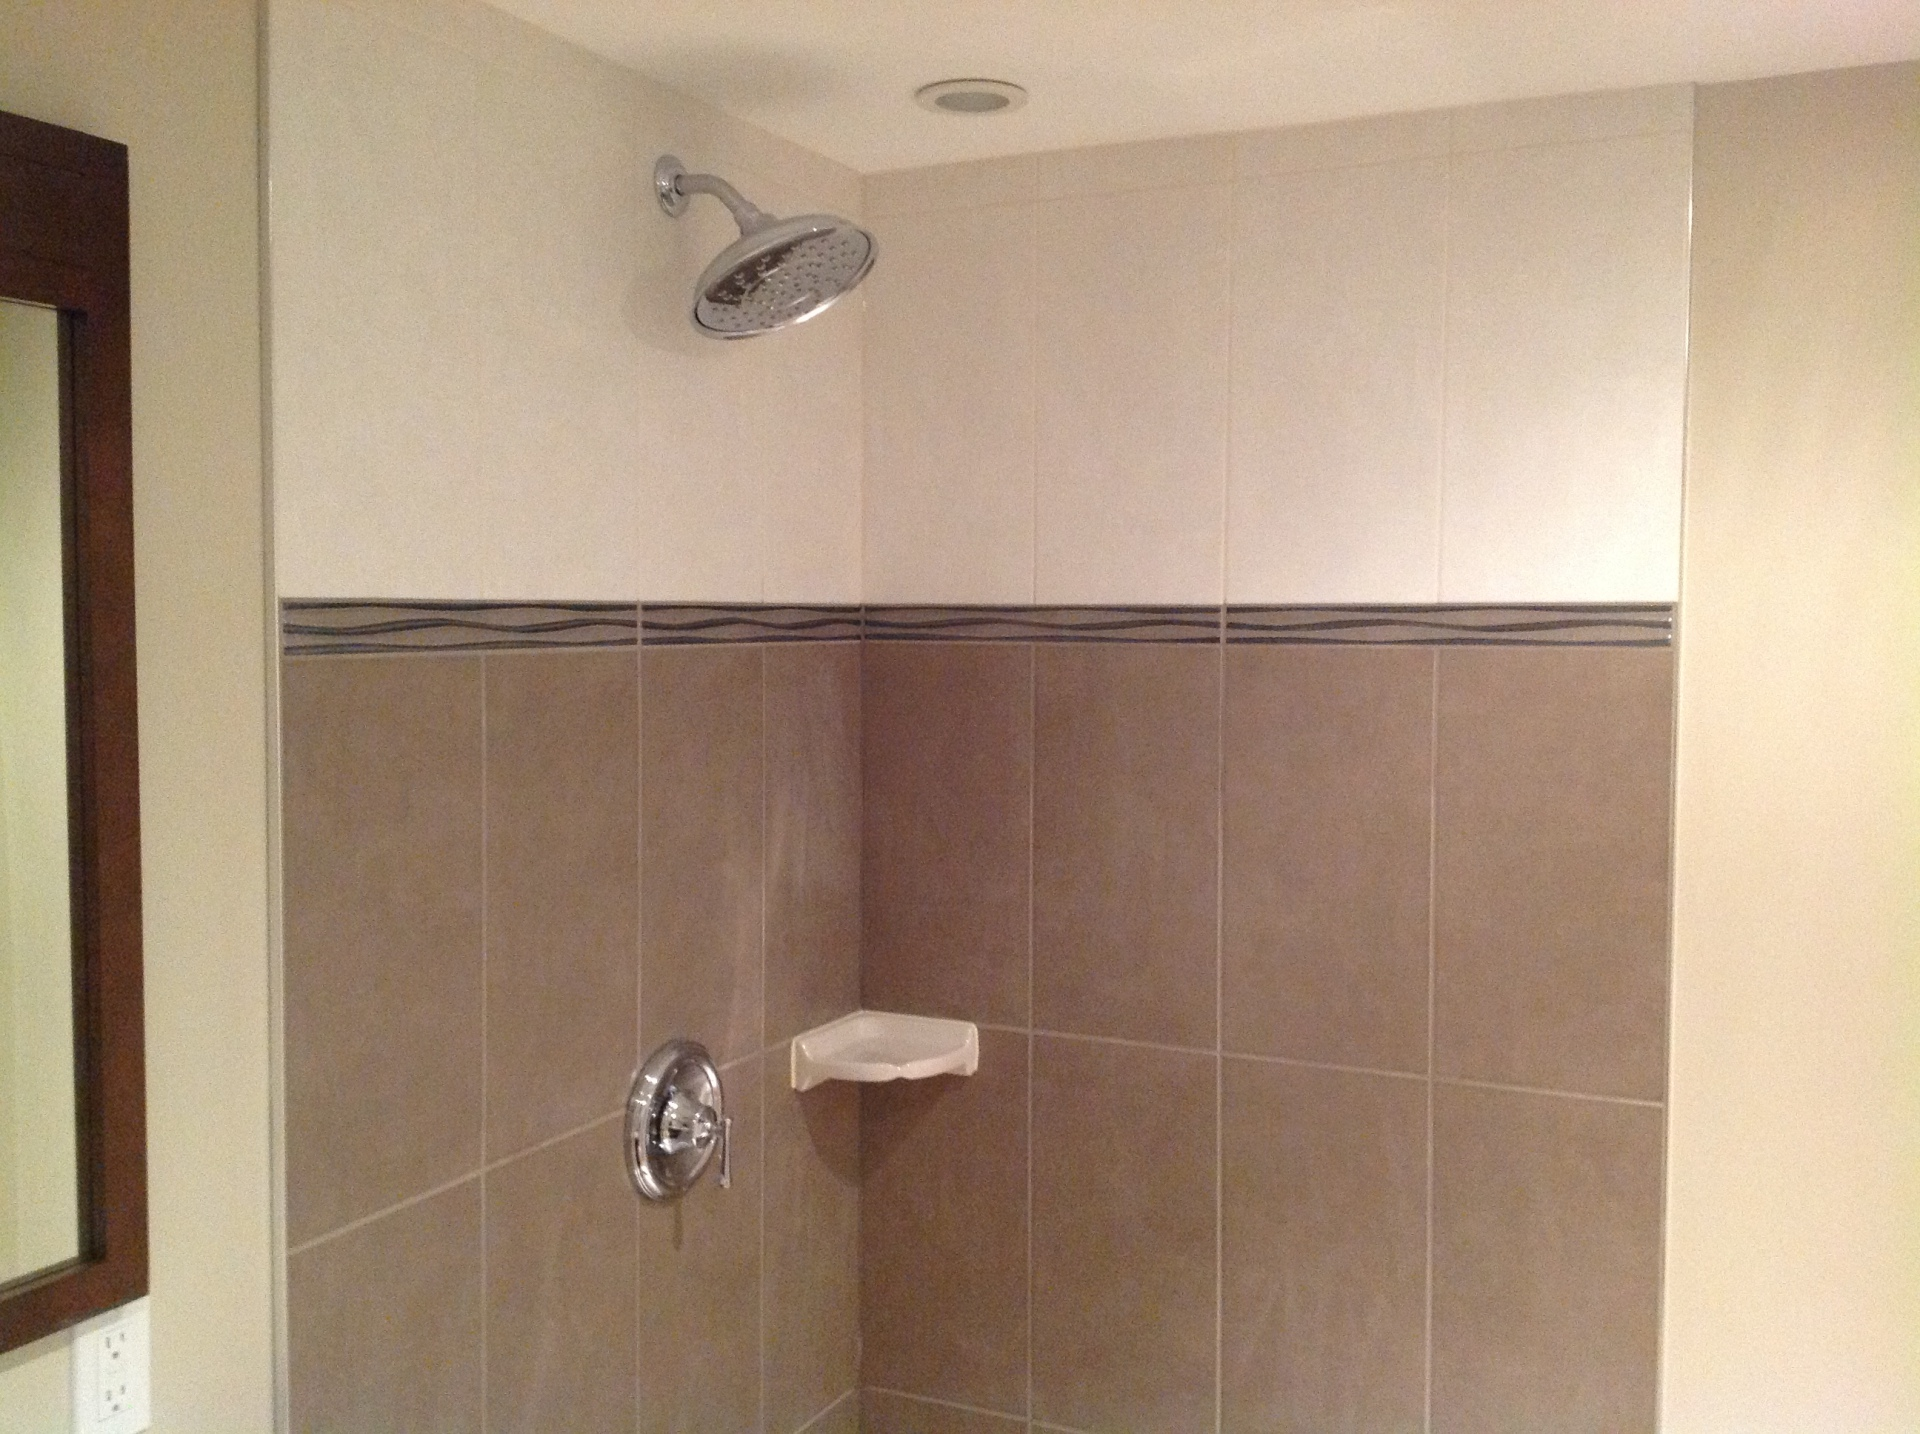 Porcelain shower with white and gray tiles